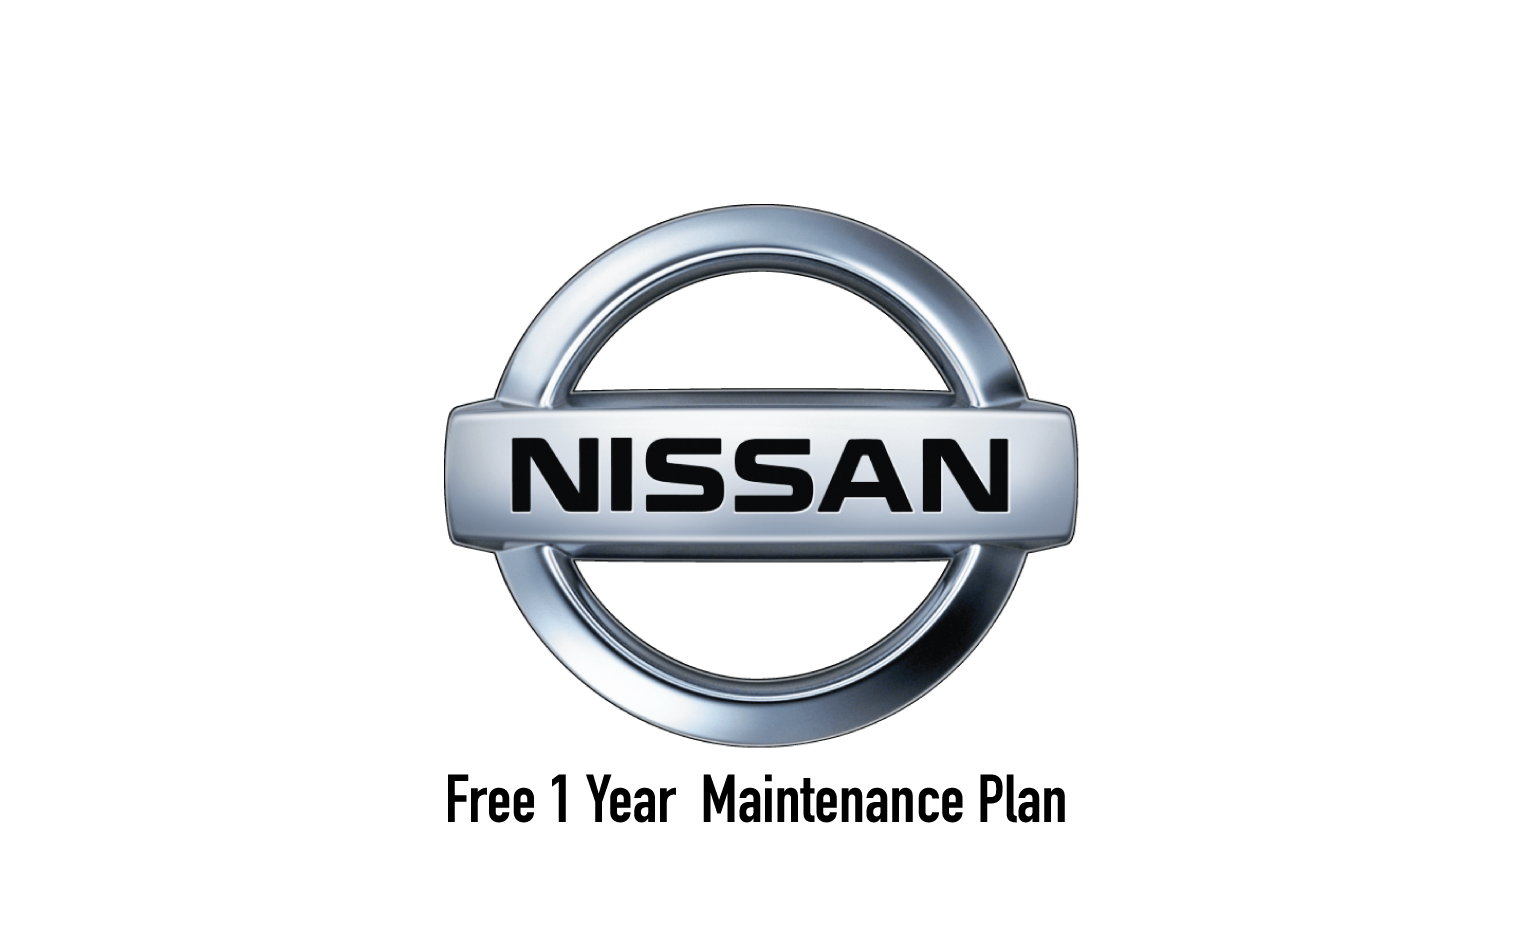 Nissan CPO maintenance